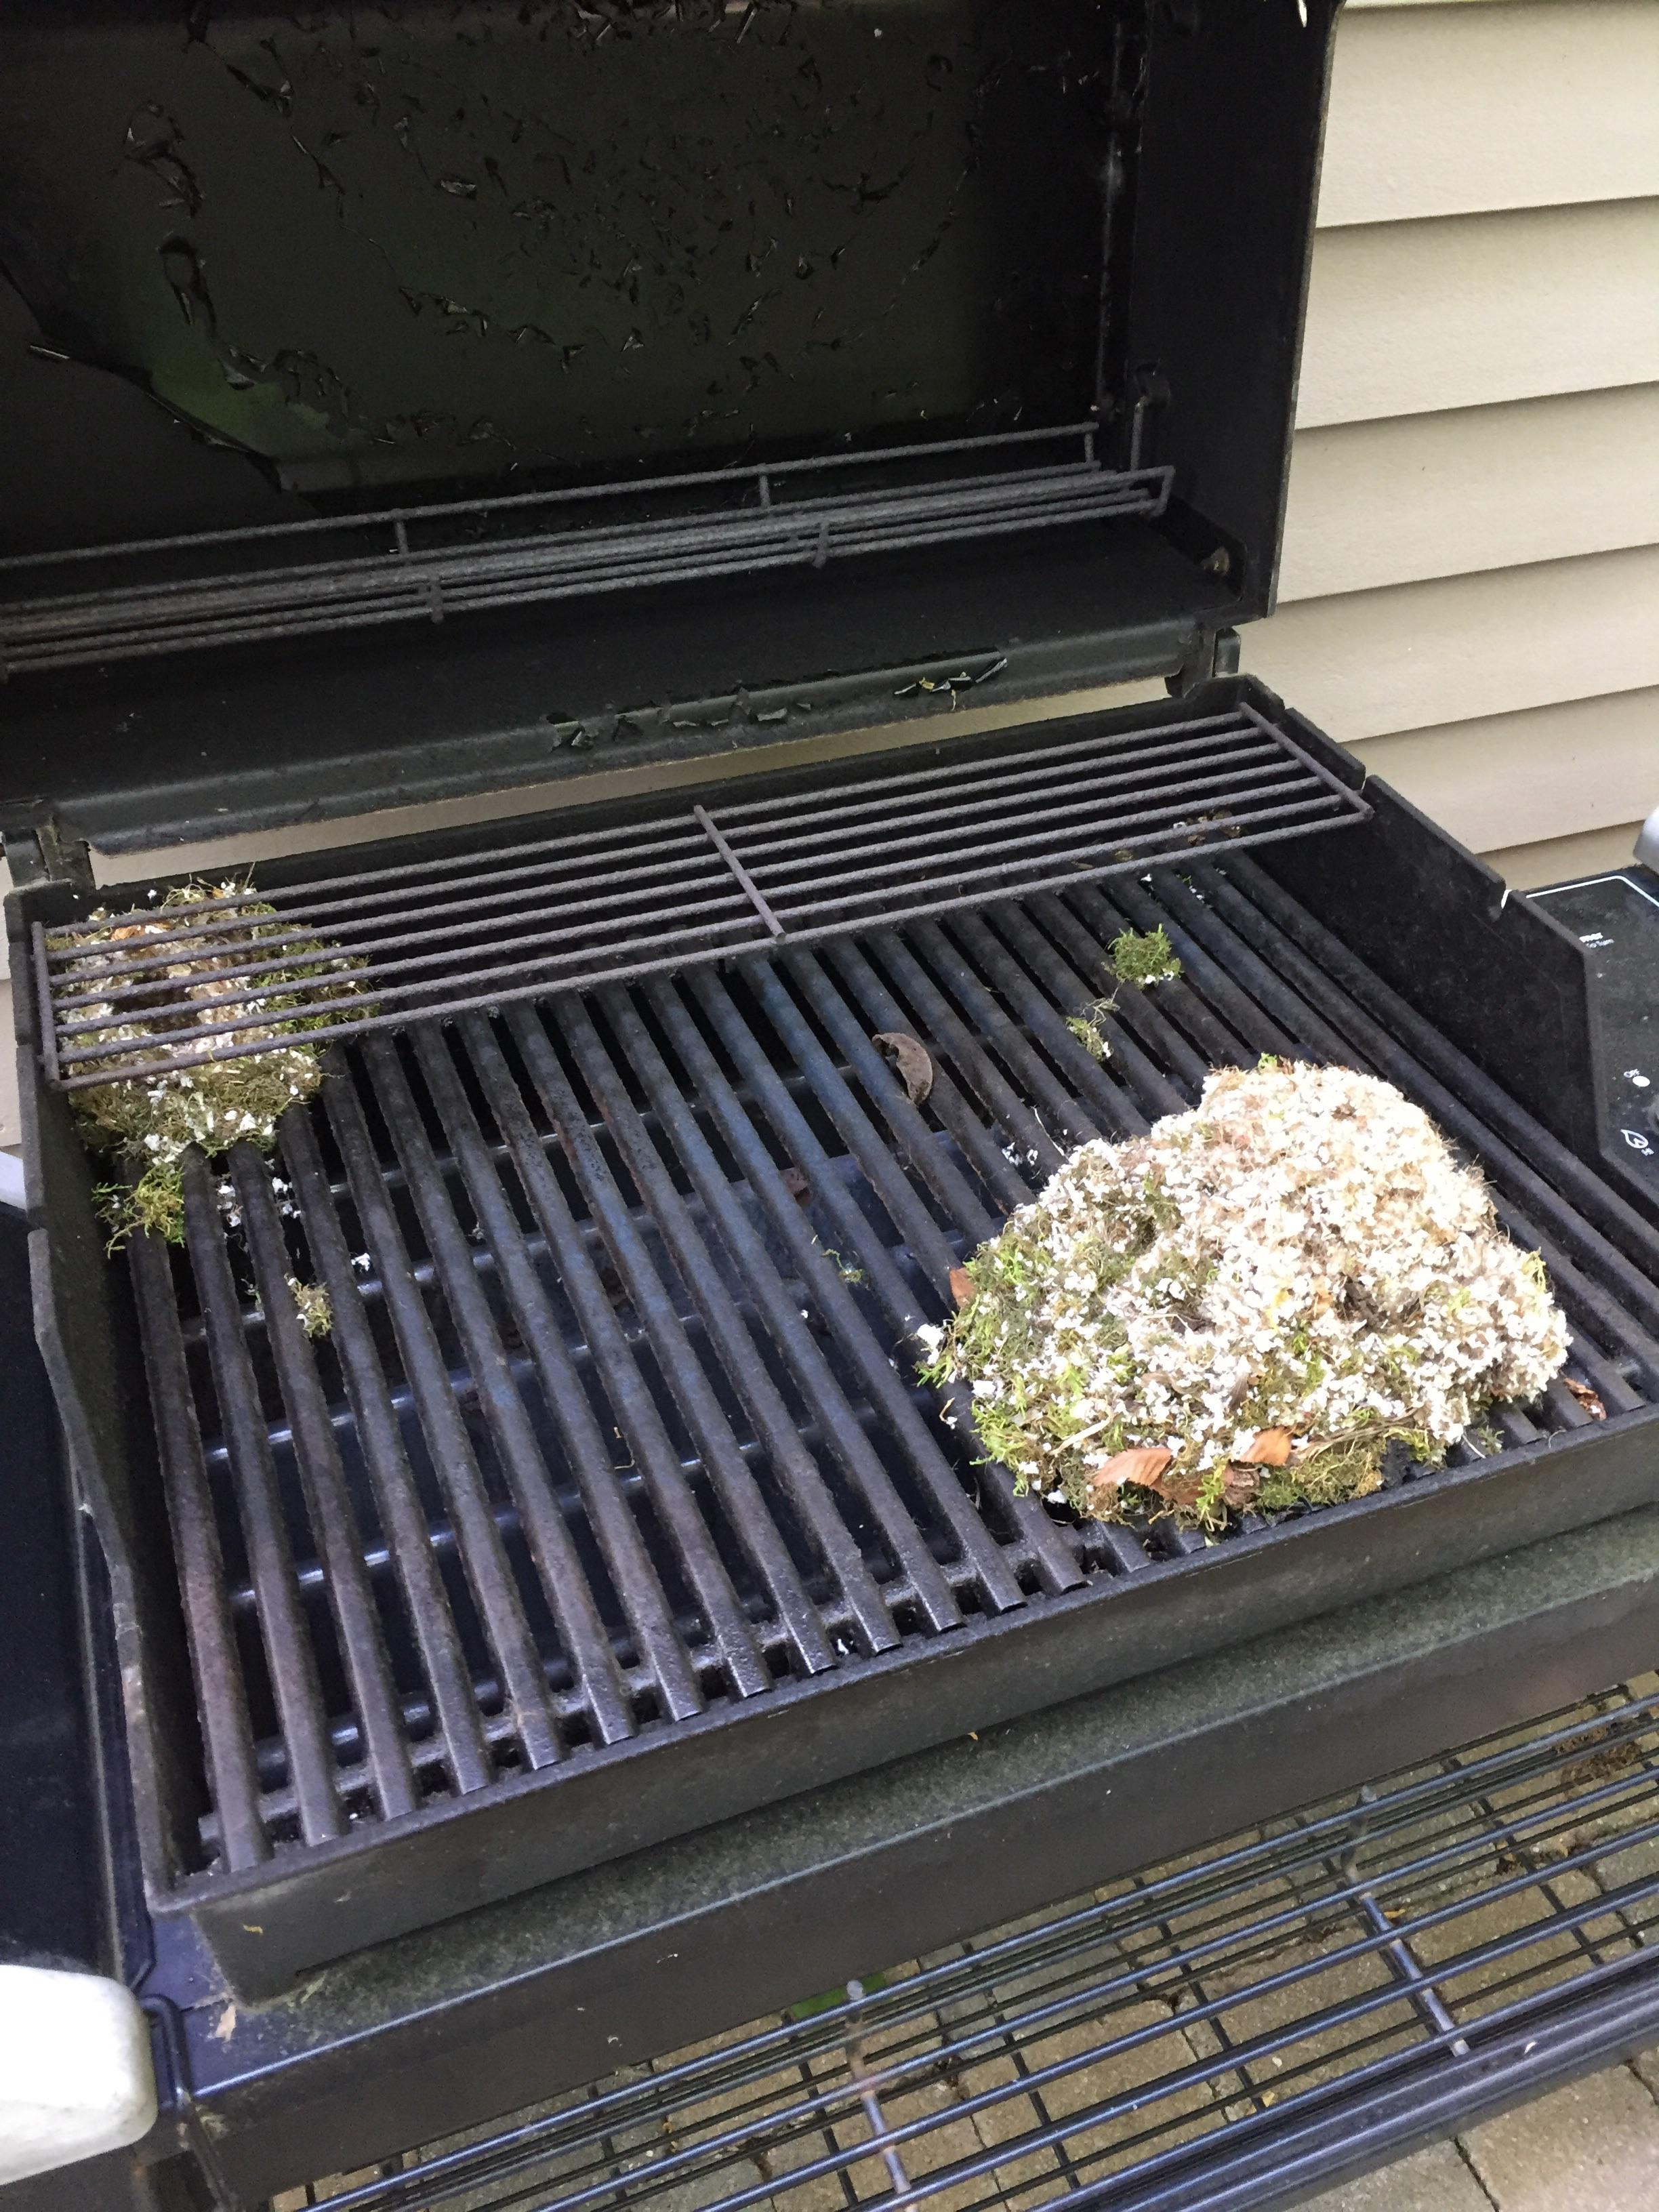 We were going to fire up the grill and found a mouse nest. The ...